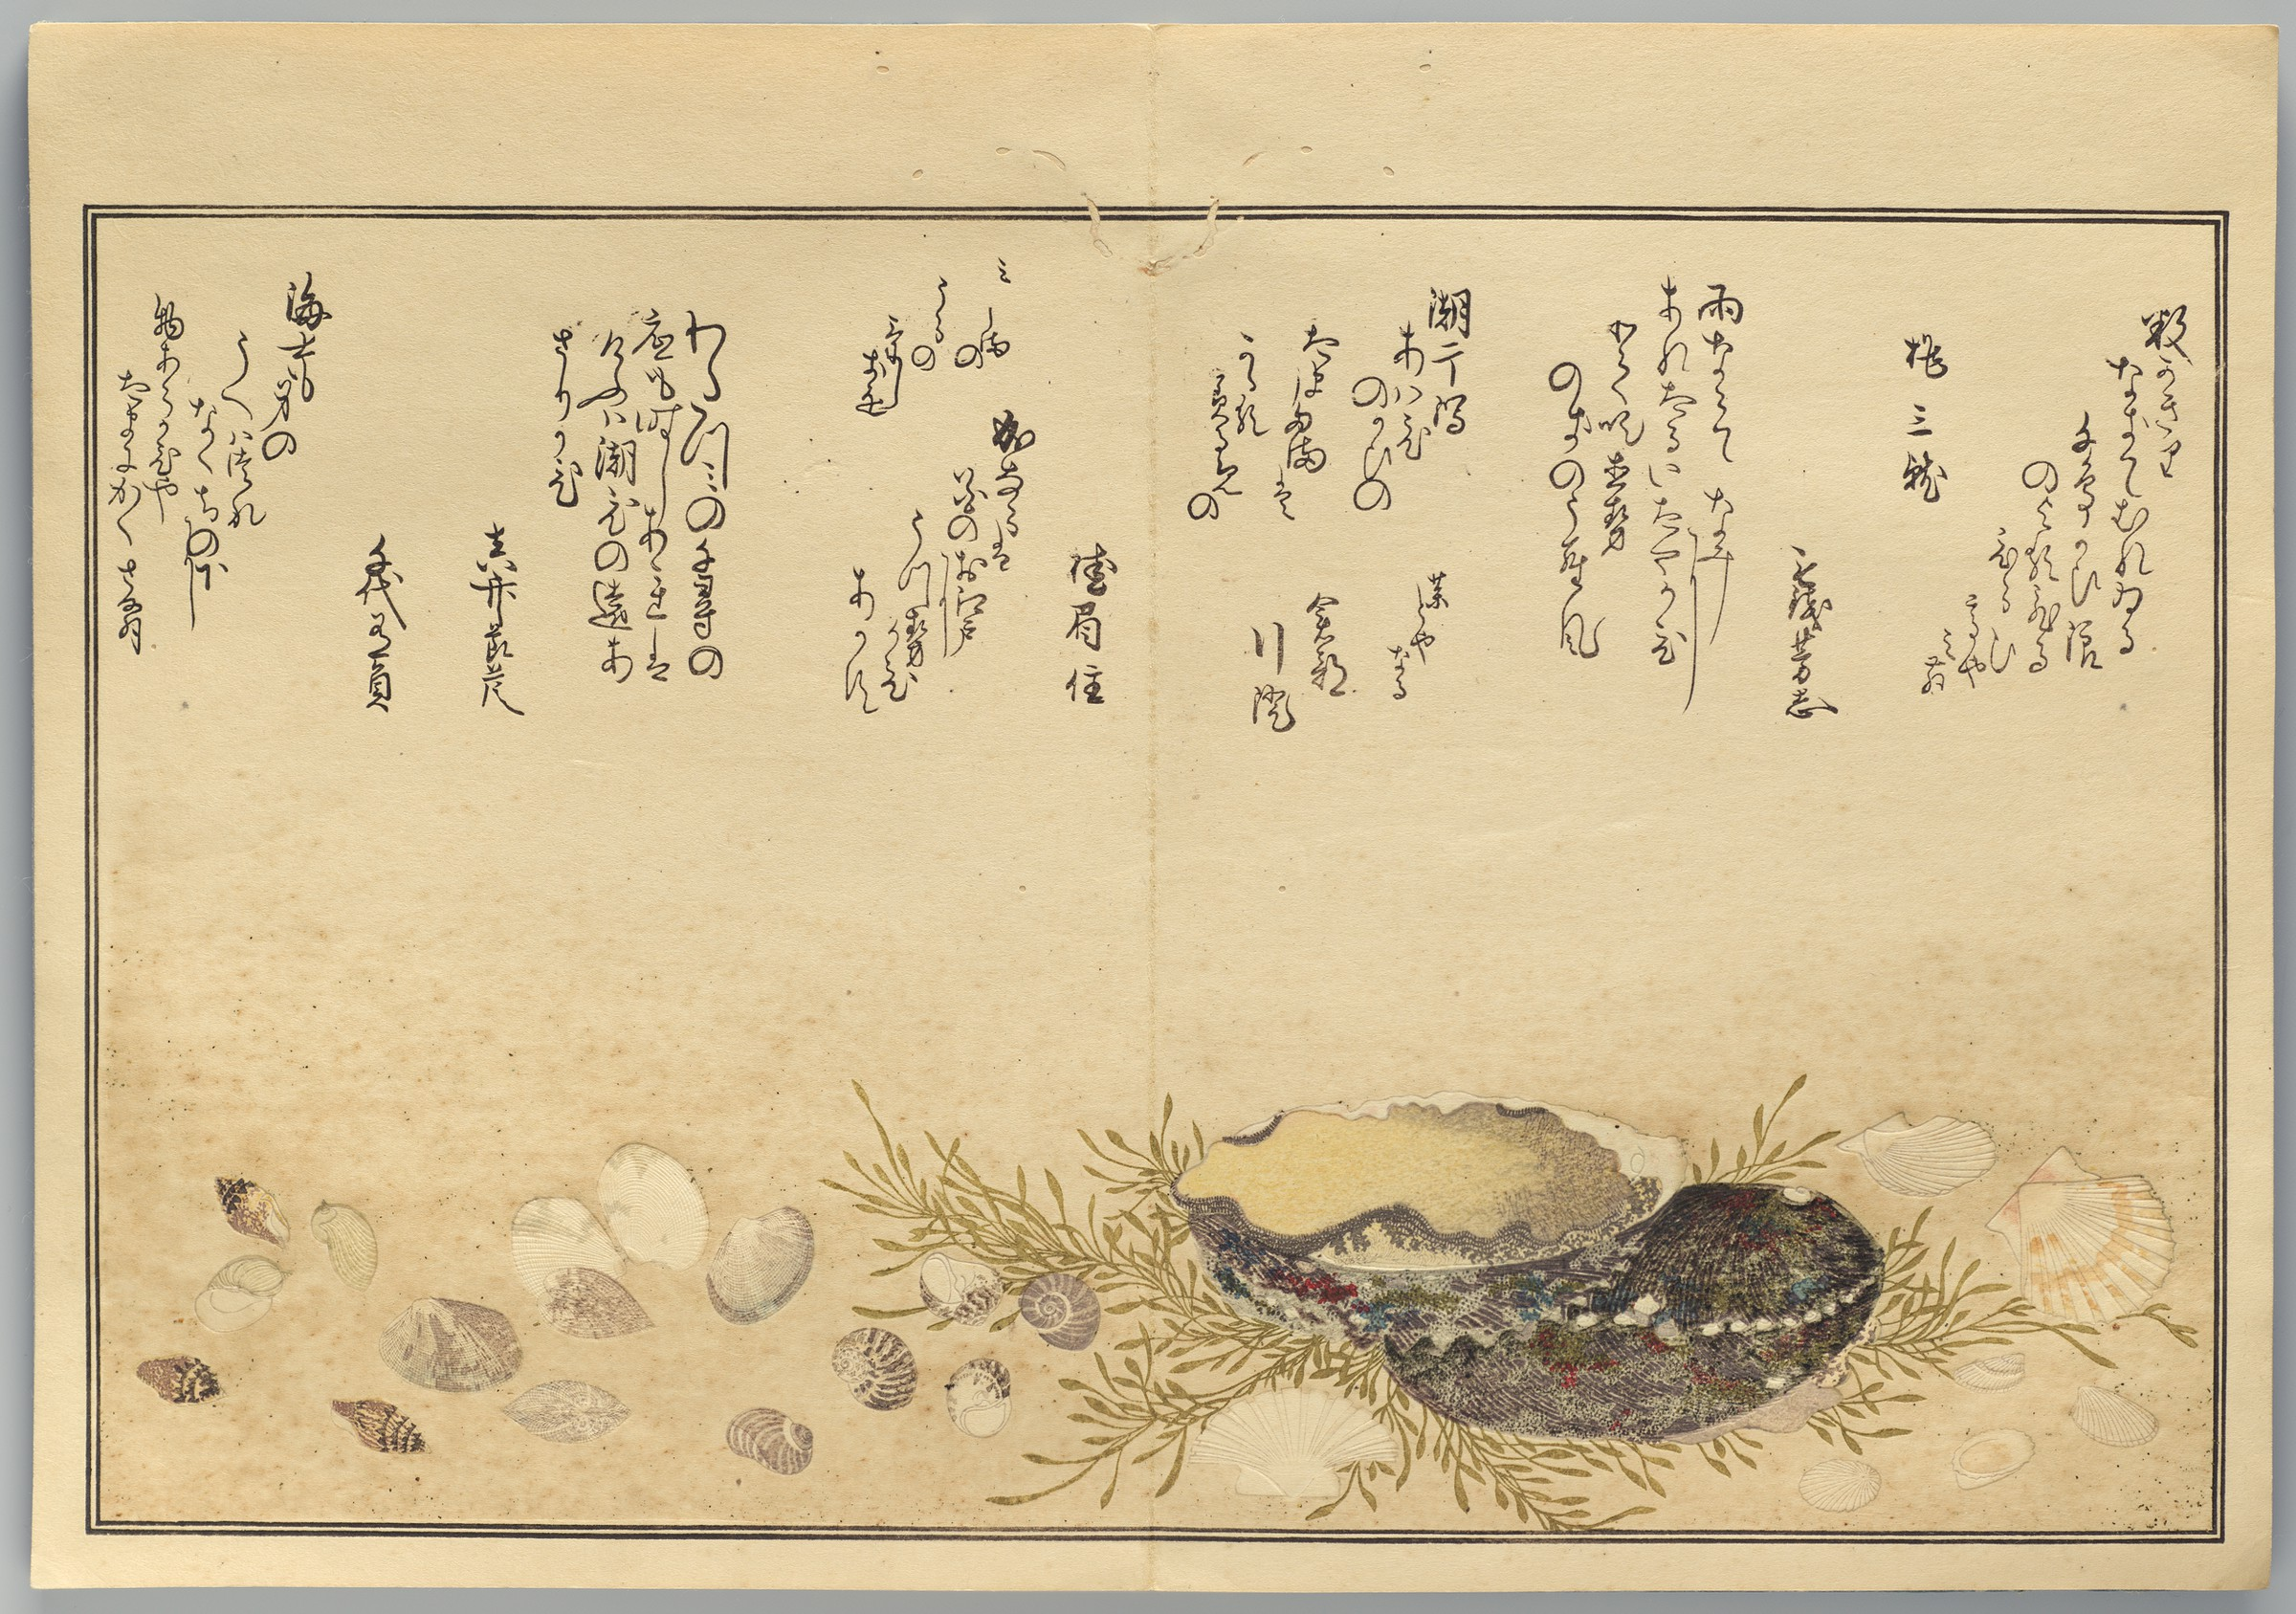 Page from the woodblock-printed book by Kitagawa Utamaro depicting seashells.